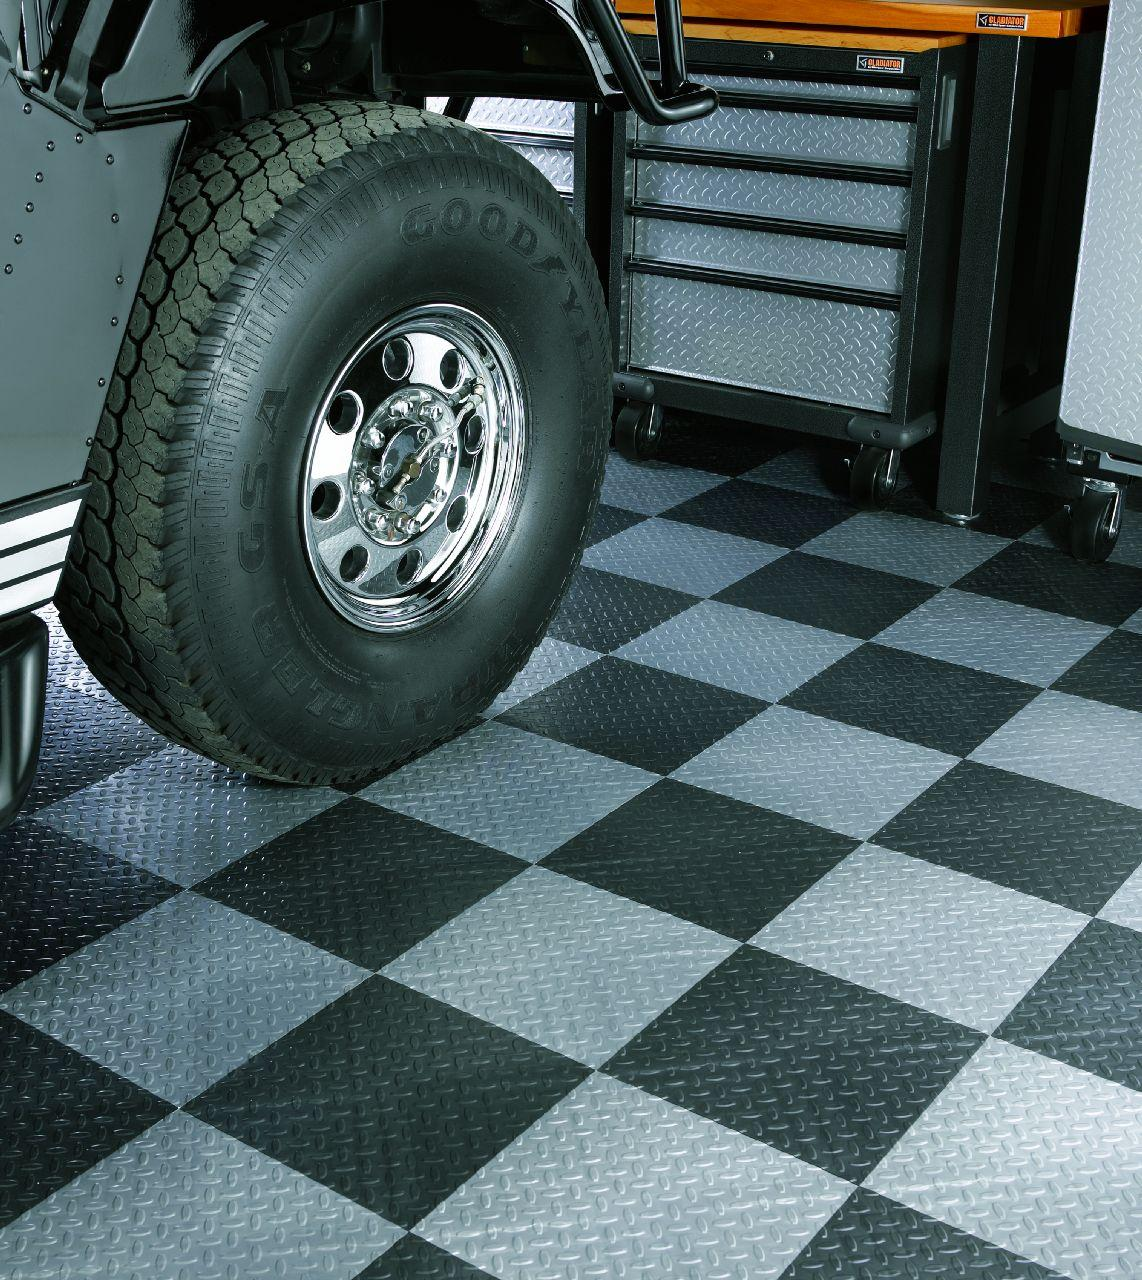 Gladiator garage floor tiles gallery tile flooring design ideas gladiator garageworks gaft24ttta floor tile 24 pack blue view larger doublecrazyfo gallery dailygadgetfo Choice Image